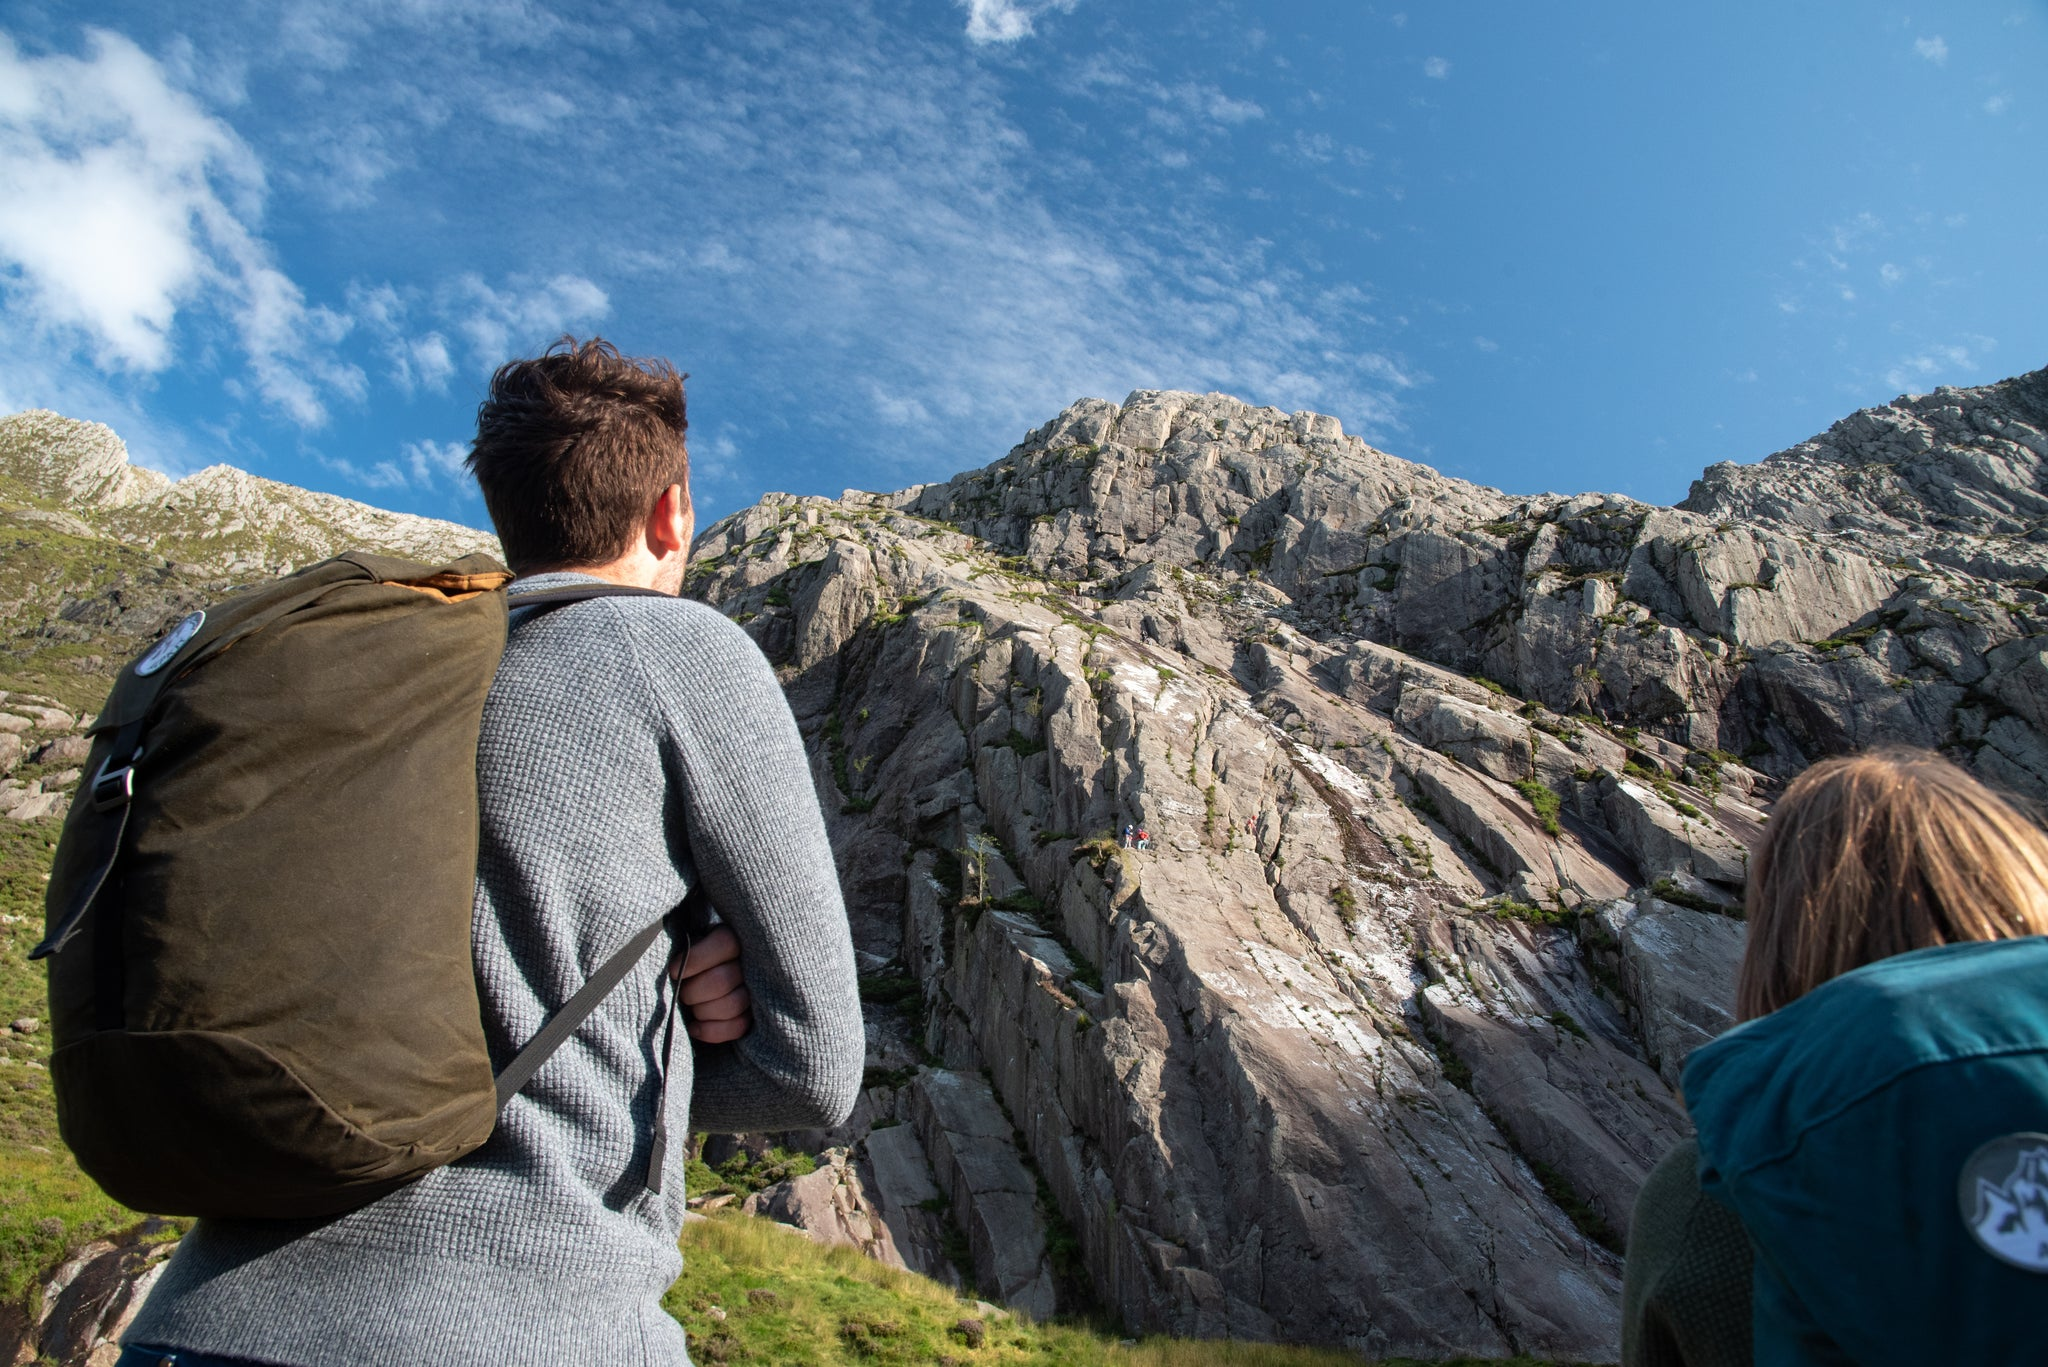 A man and a woman watching climbers on Tryfan in Eryri / Snowdonia National Park